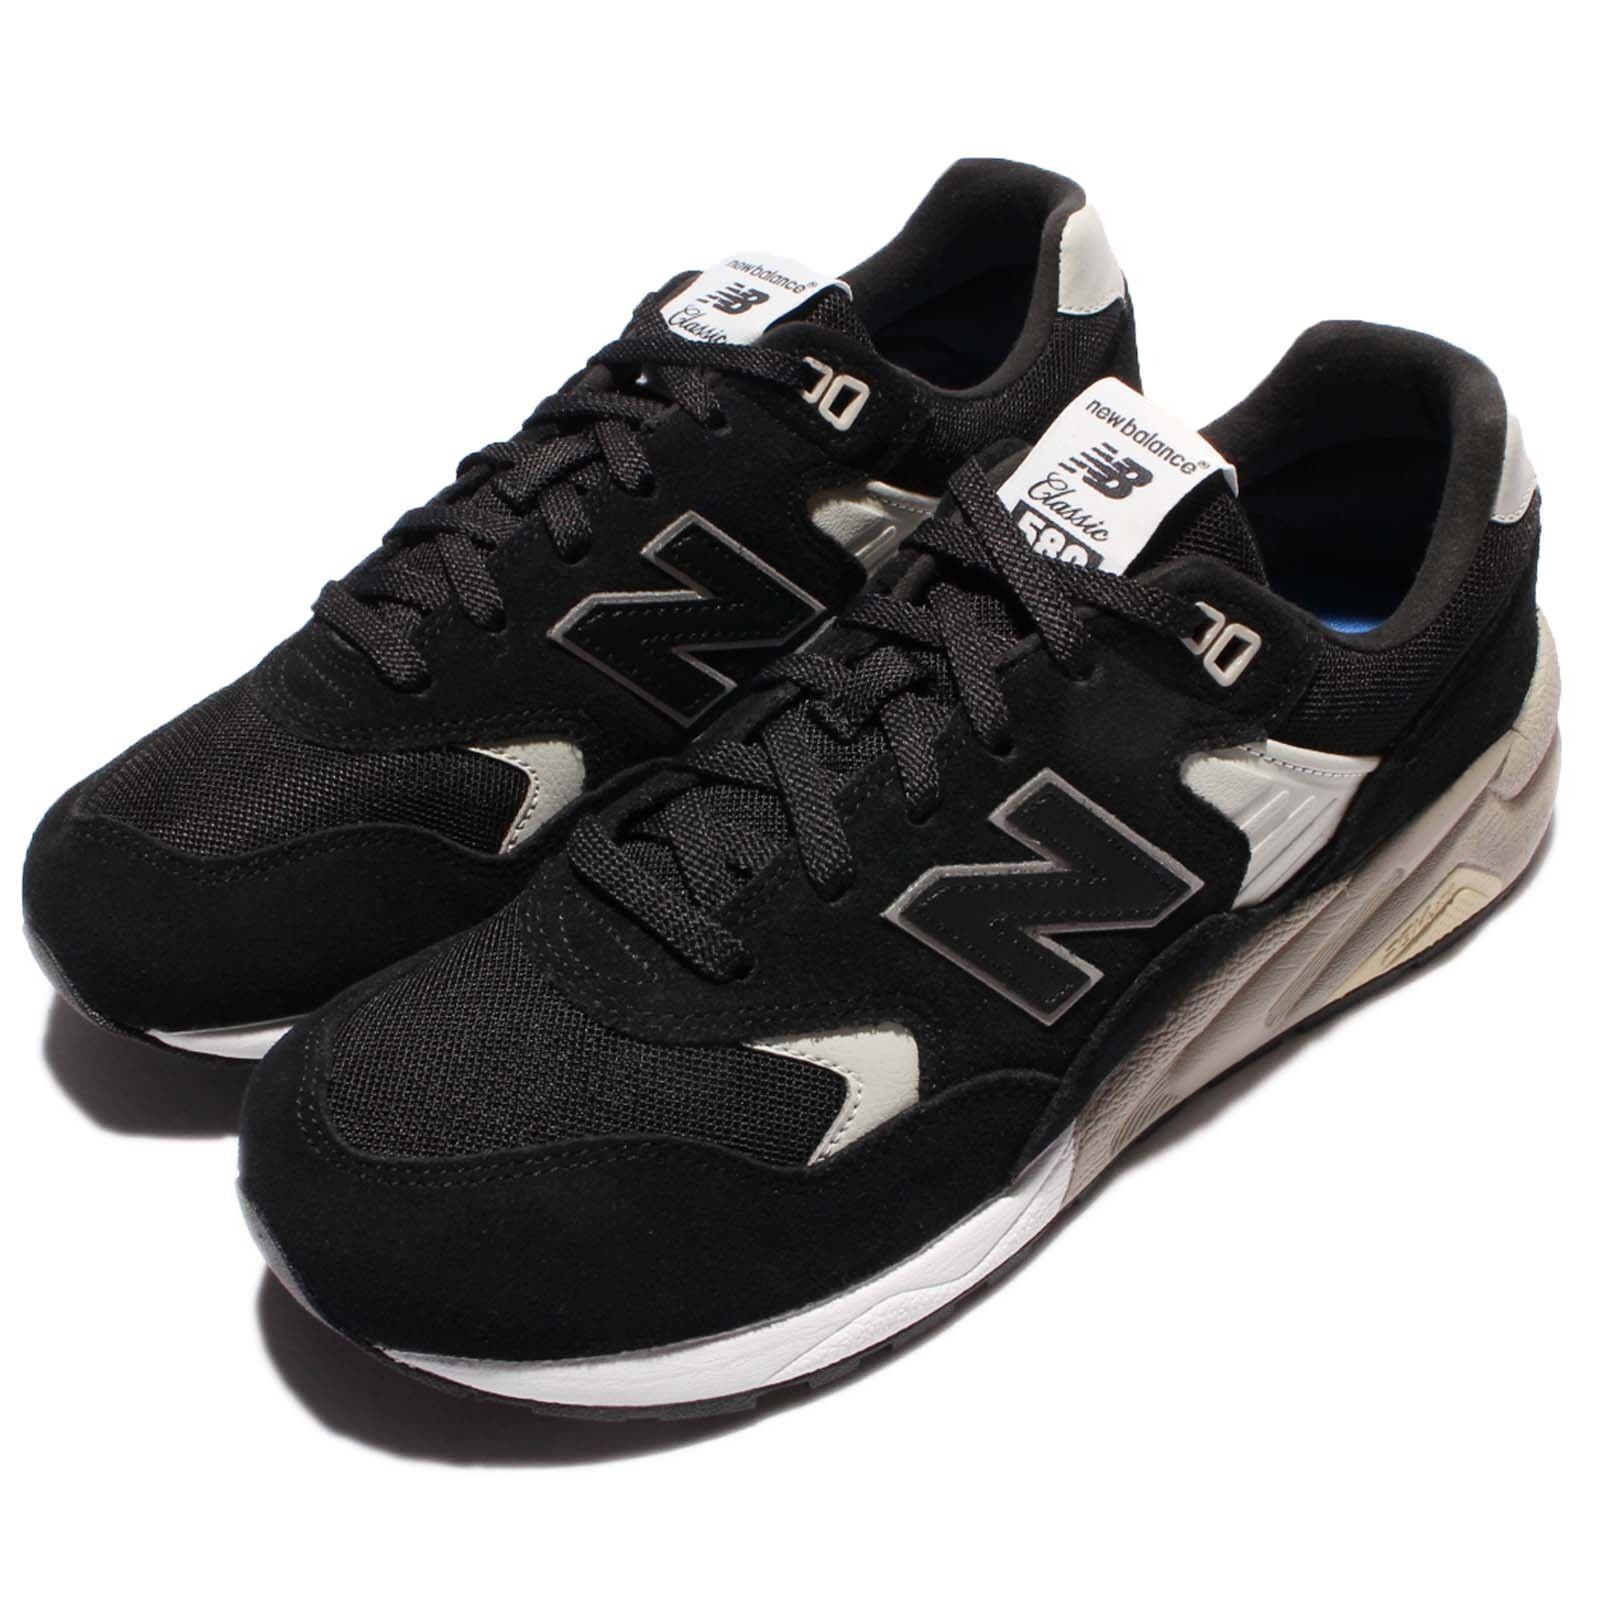 New Balance MRT580BN D Black Grey Suede Men Running Shoes Sneakers MRT580BND